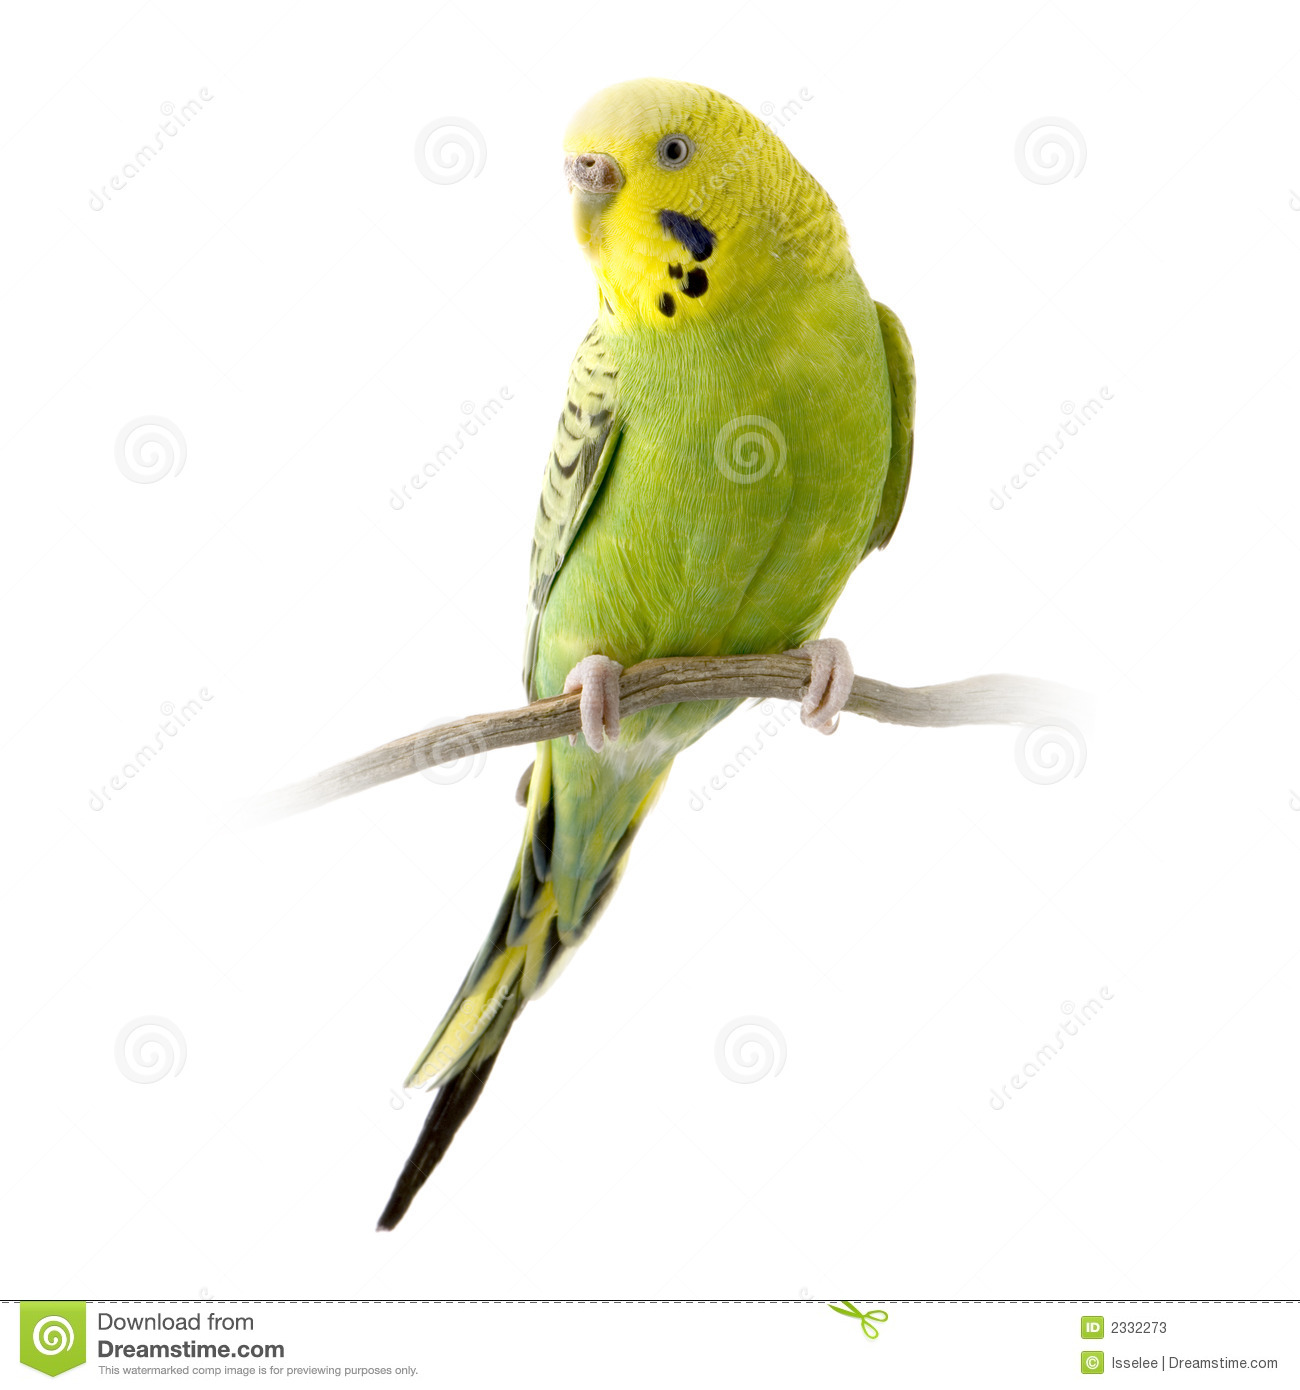 Cute Budgie Parakeet Stock Photos, Images, & Pictures.